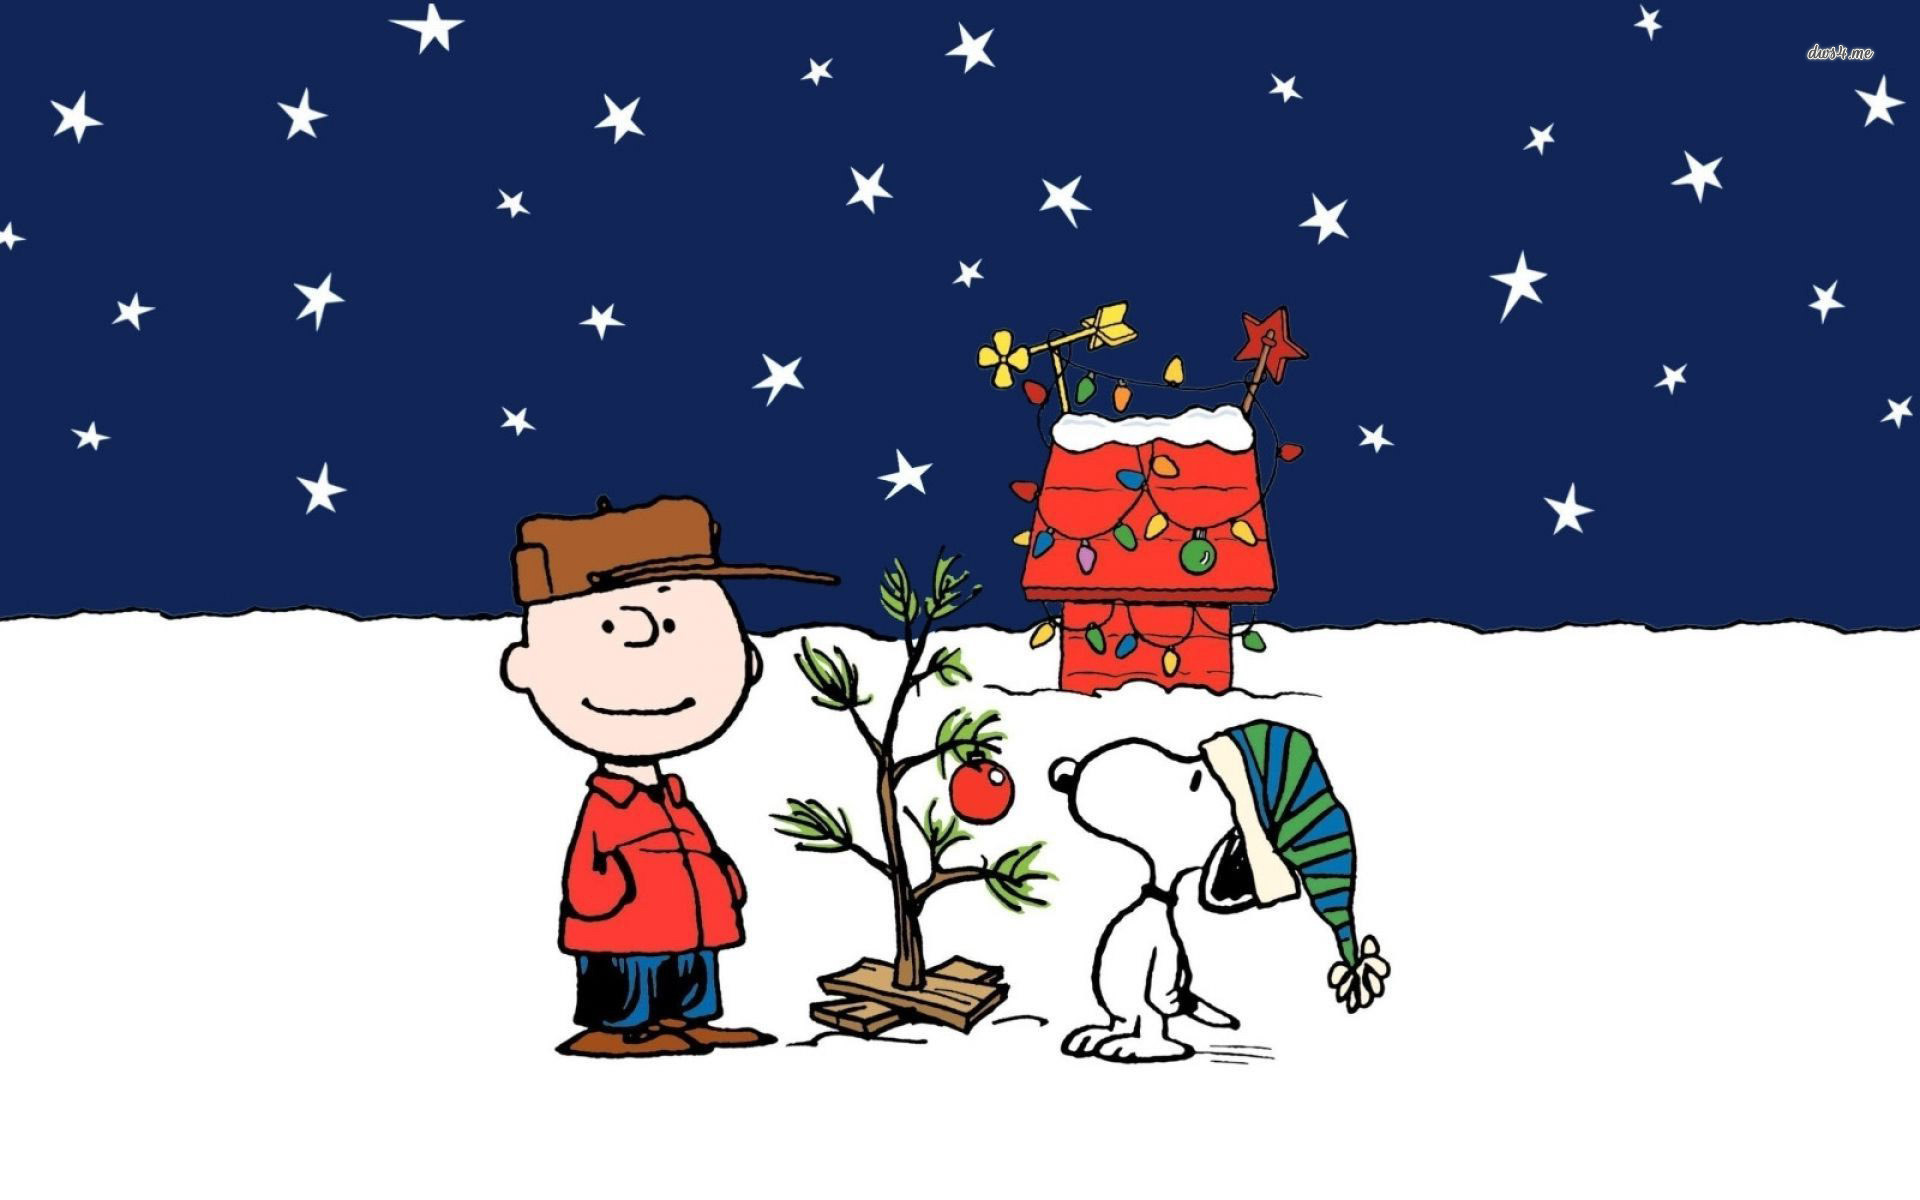 Christmas Snoopy.Snoopy Christmas Backgrounds 49 Images